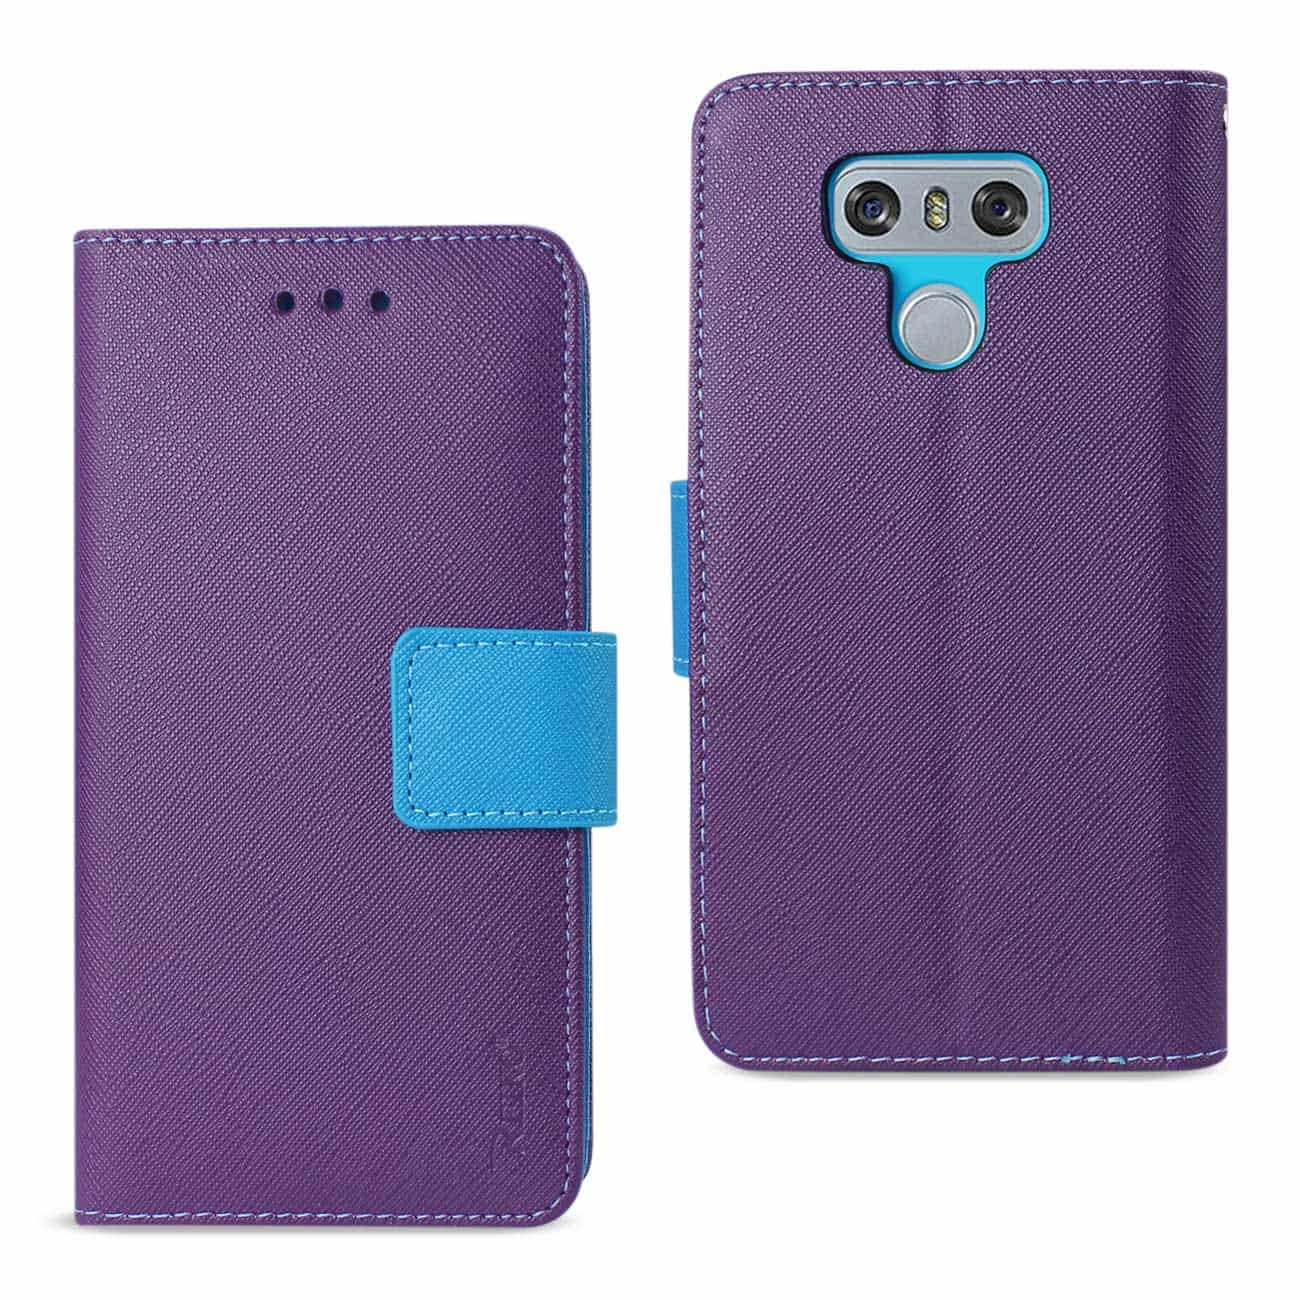 LG G6 3-IN-1 WALLET CASE IN PURPLE